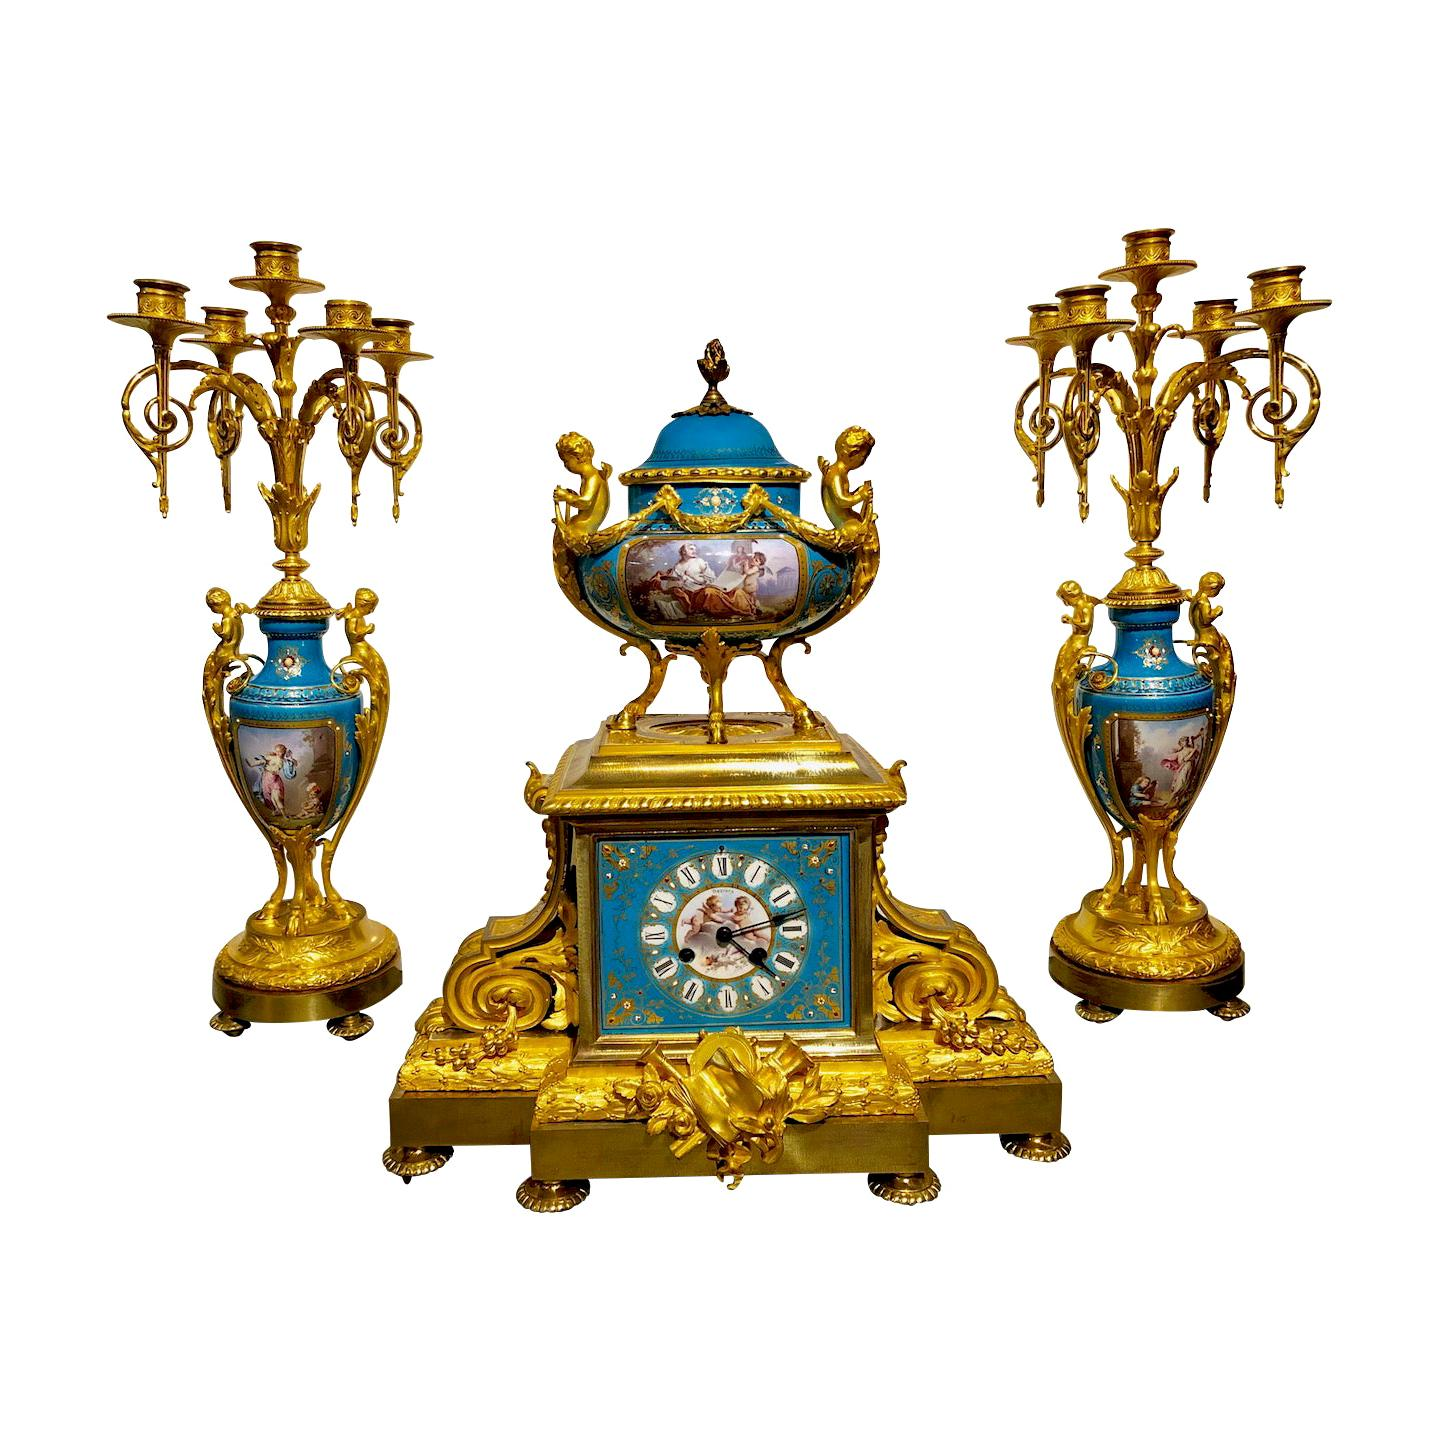 19th Century Ormolu Bronze and Sevres Jeweled Clock Set by H. Picard/Deniere